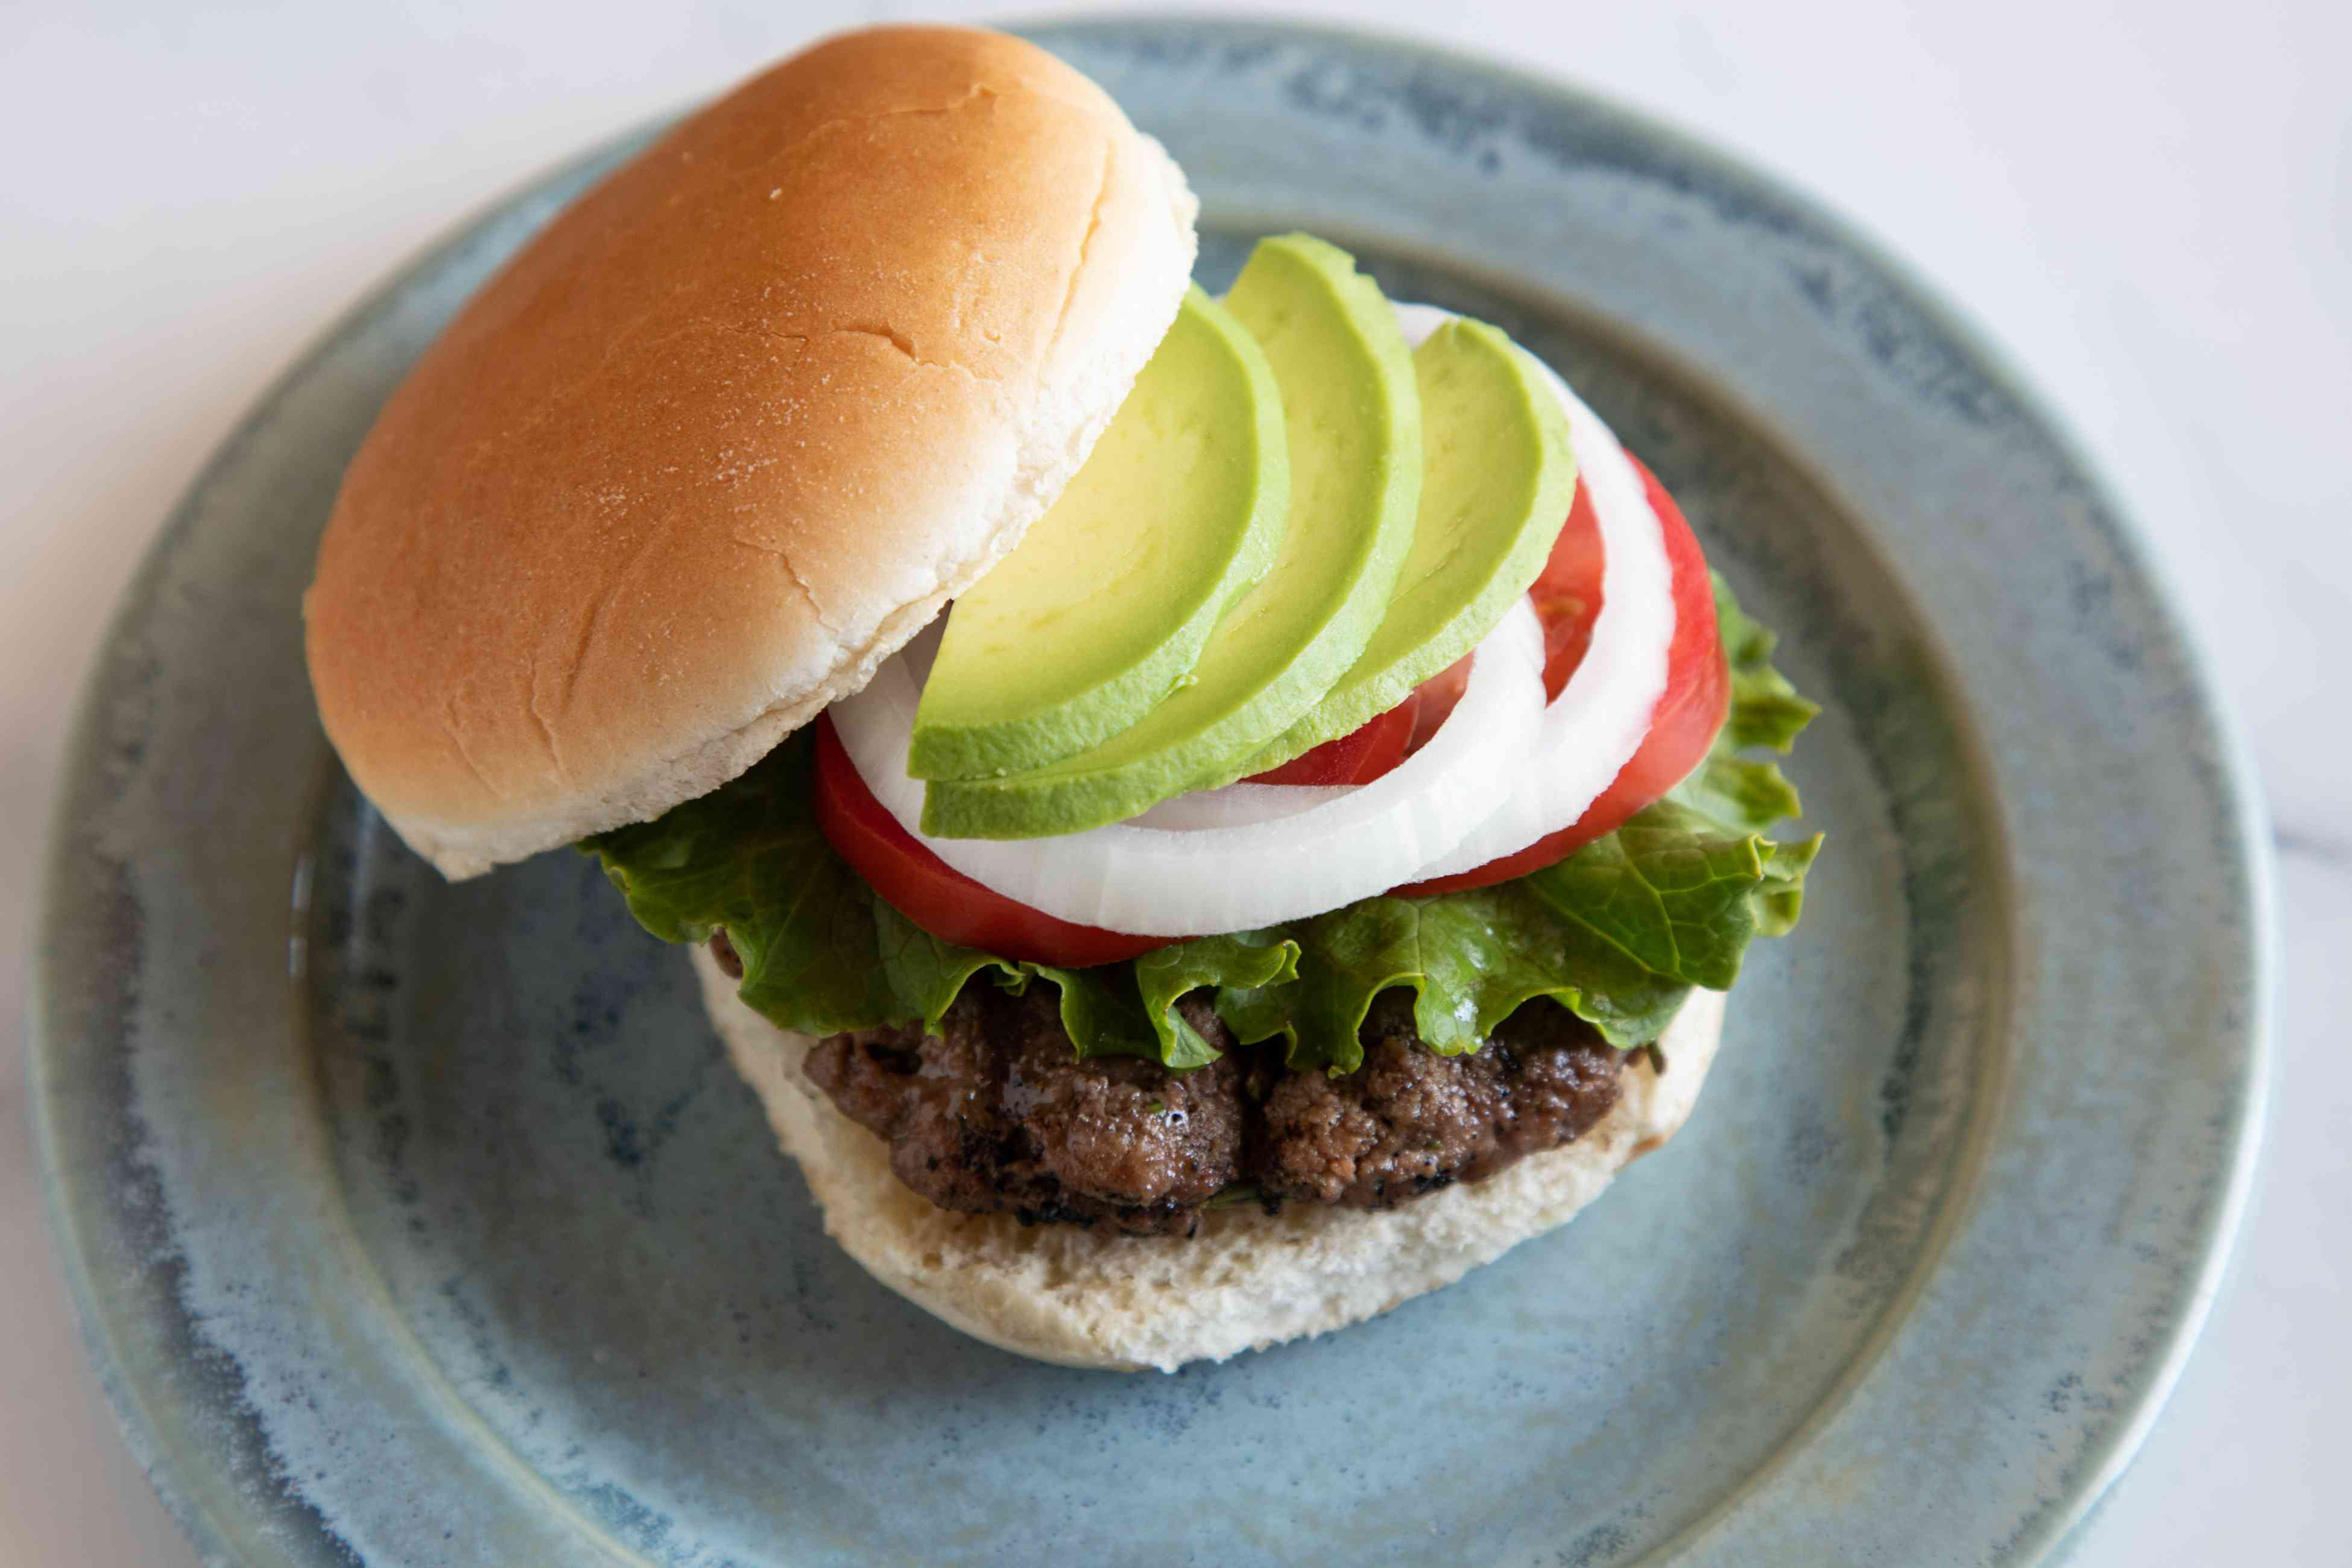 A famous burger topped with avocado on a plate.